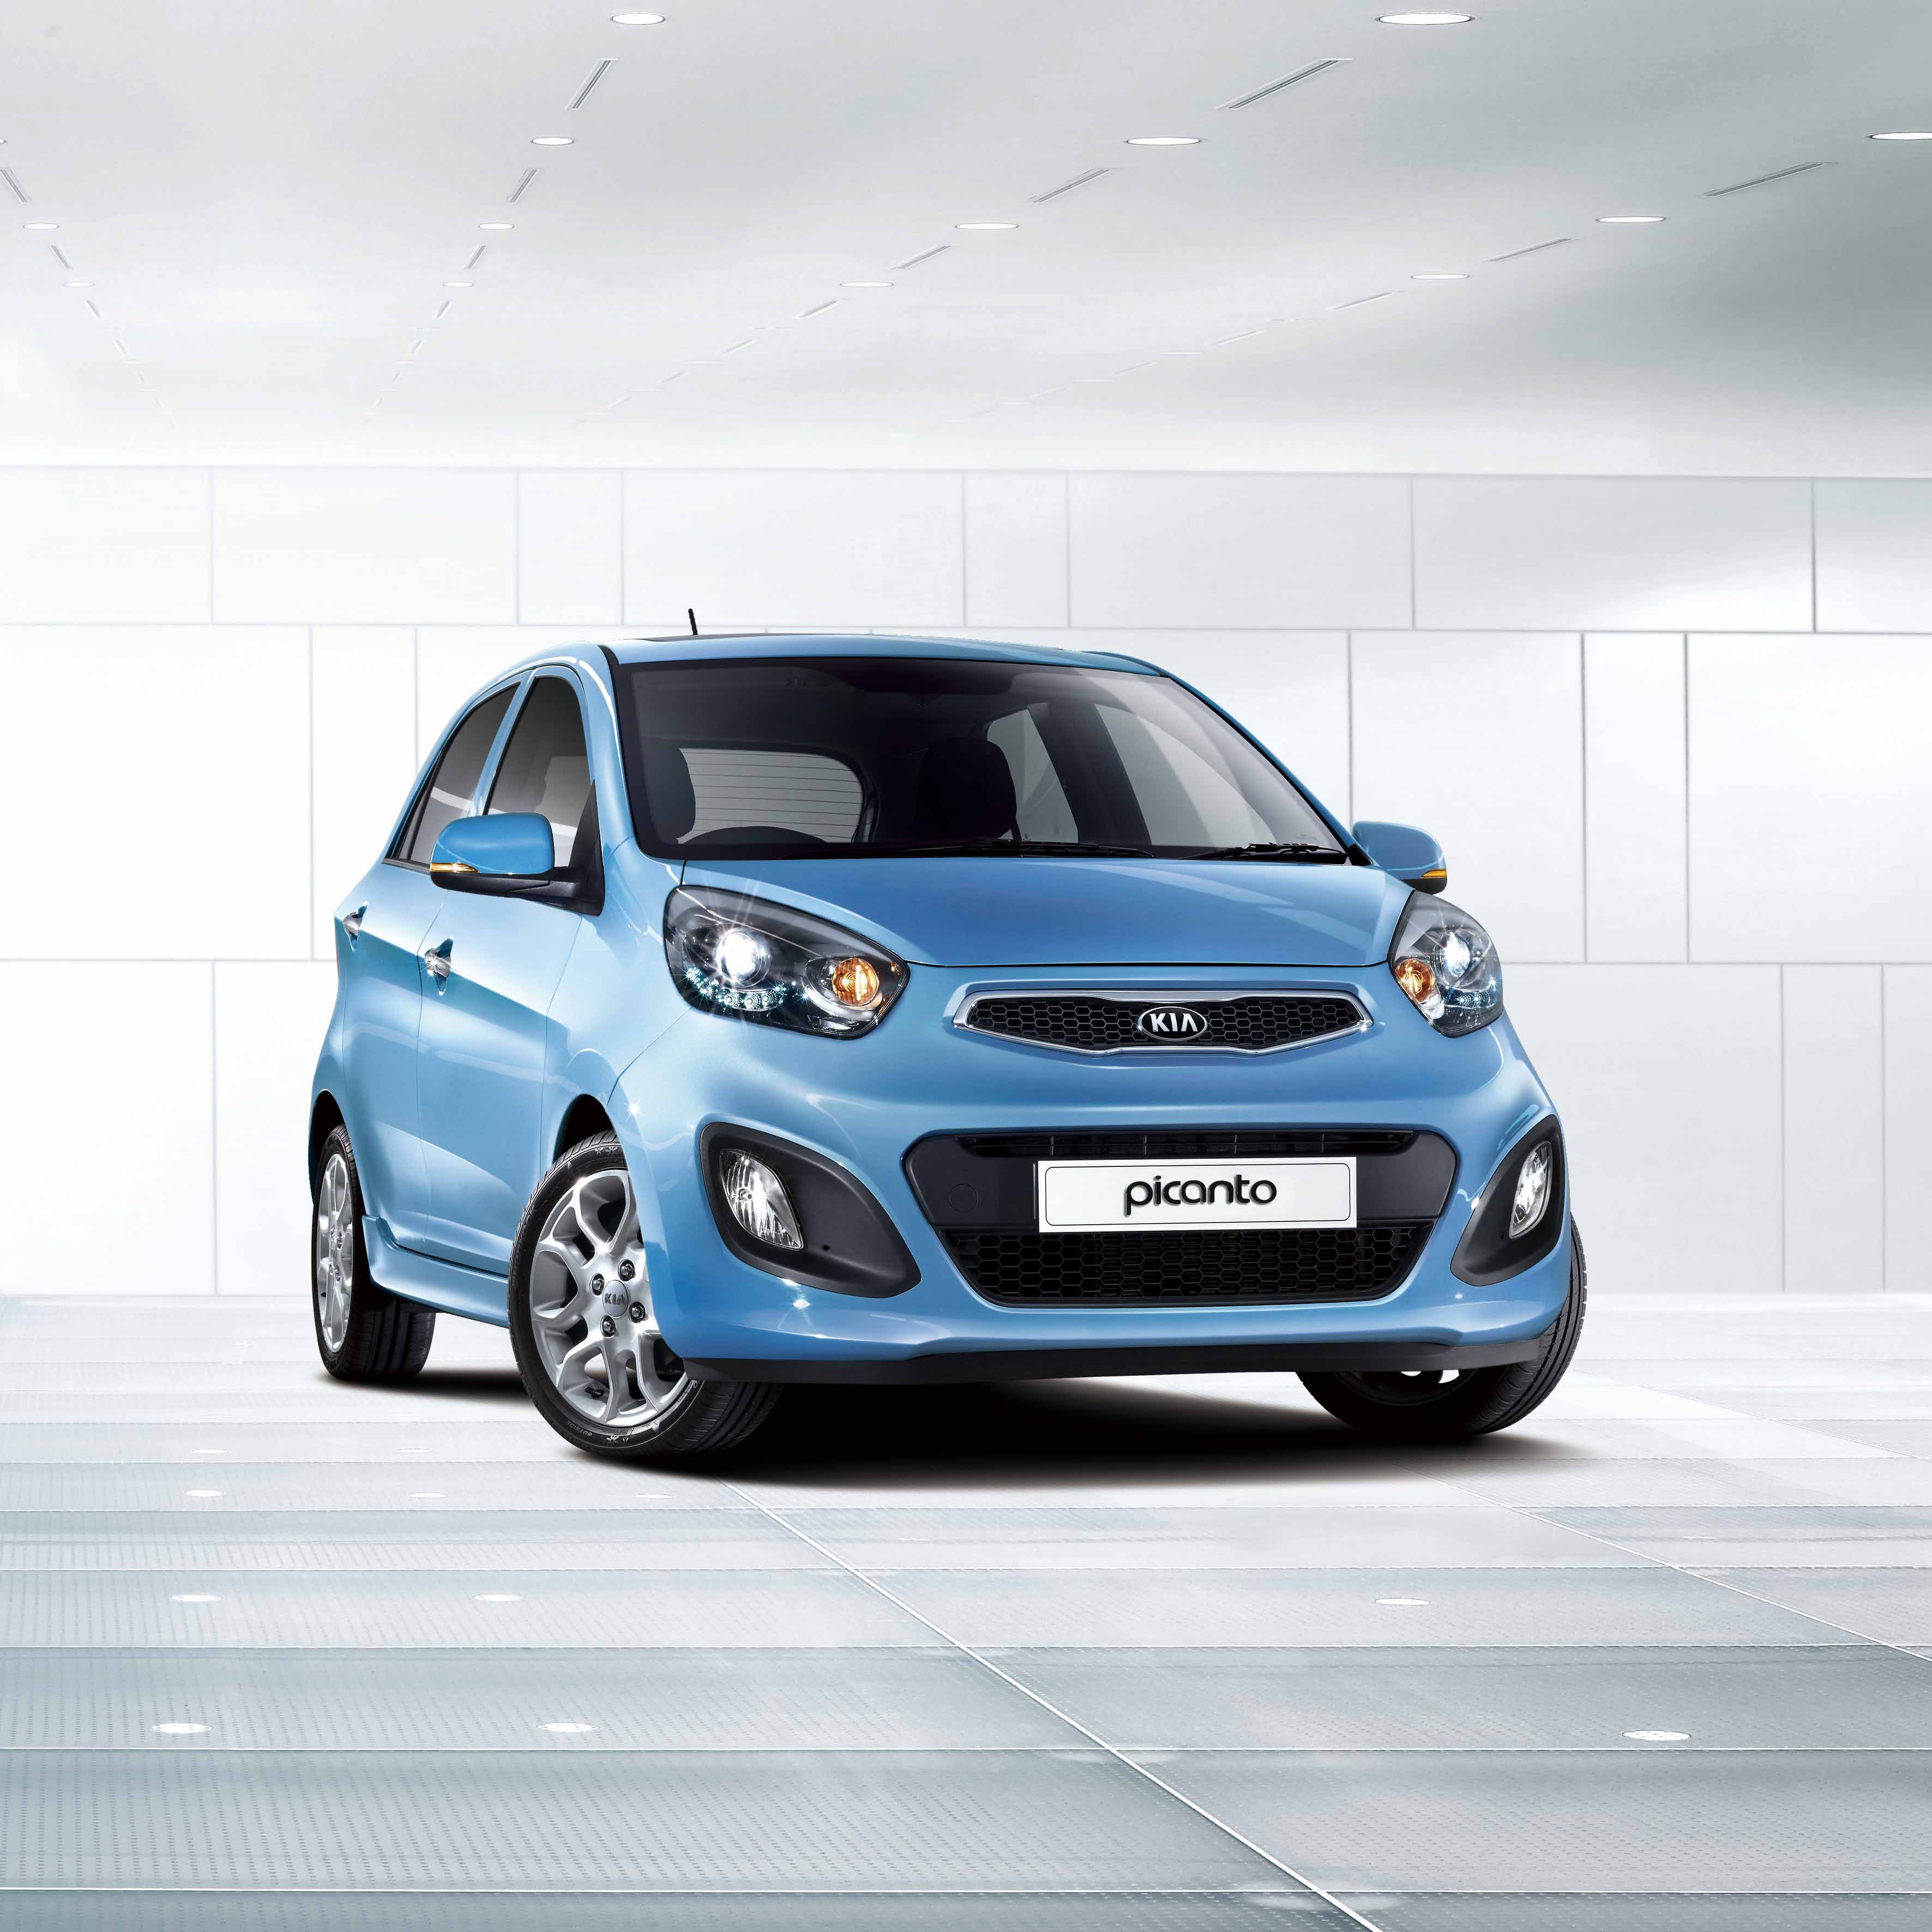 The Kia Picanto is a city car produced since 2004. It is